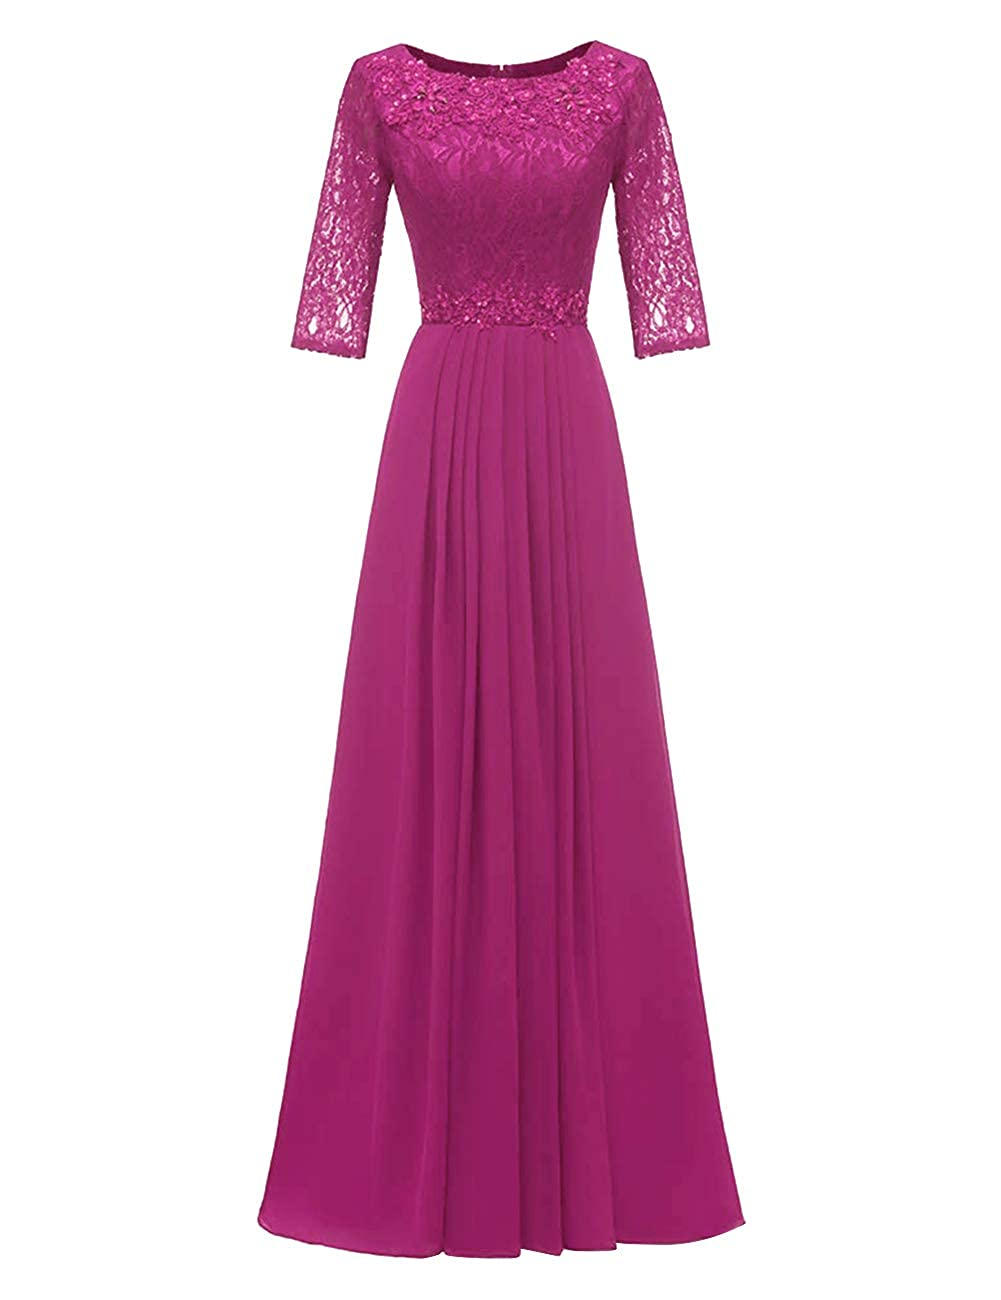 Fuchsia H.S.D Evening Dresses Long Prom Dresses Lace Bridesmaid Dresses Evening Formal Gowns